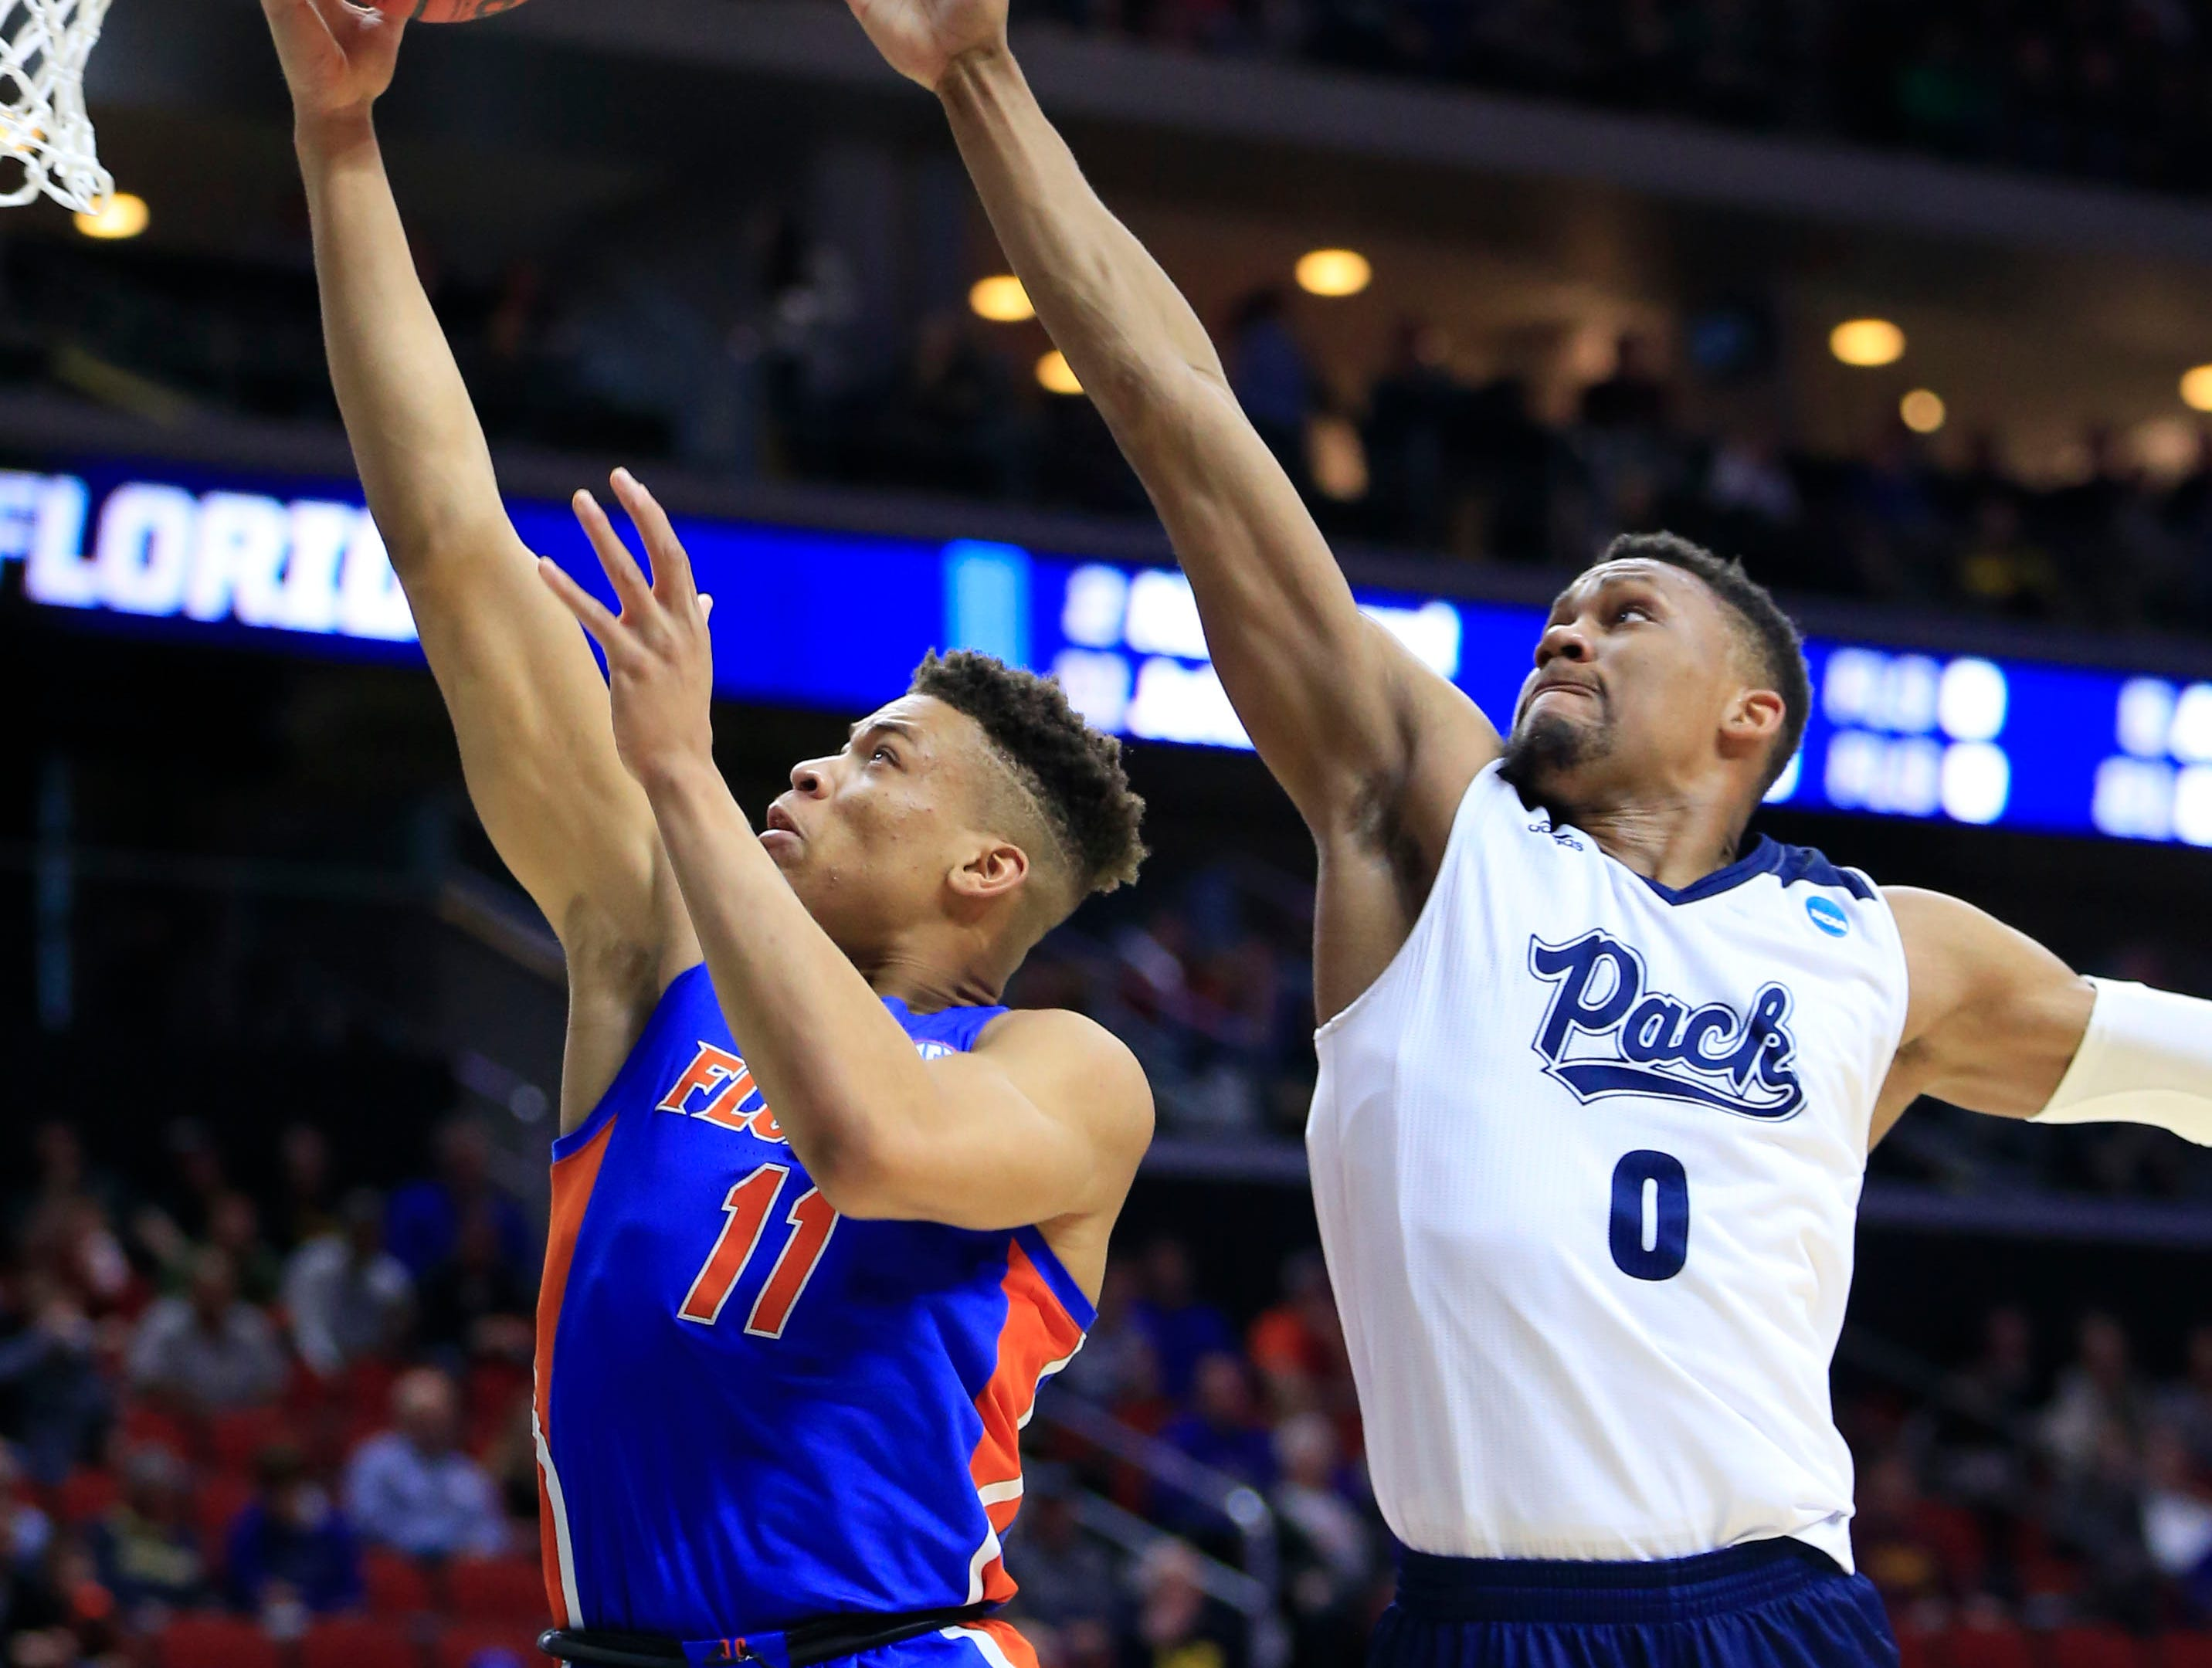 Florida forward Keyontae Johnson drives to the basket as Nevada forward Tre'Shawn Thurman defends during their NCAA Division I Men's Basketball Championship First Round game on Thursday, March 21, 2019 in Des Moines.